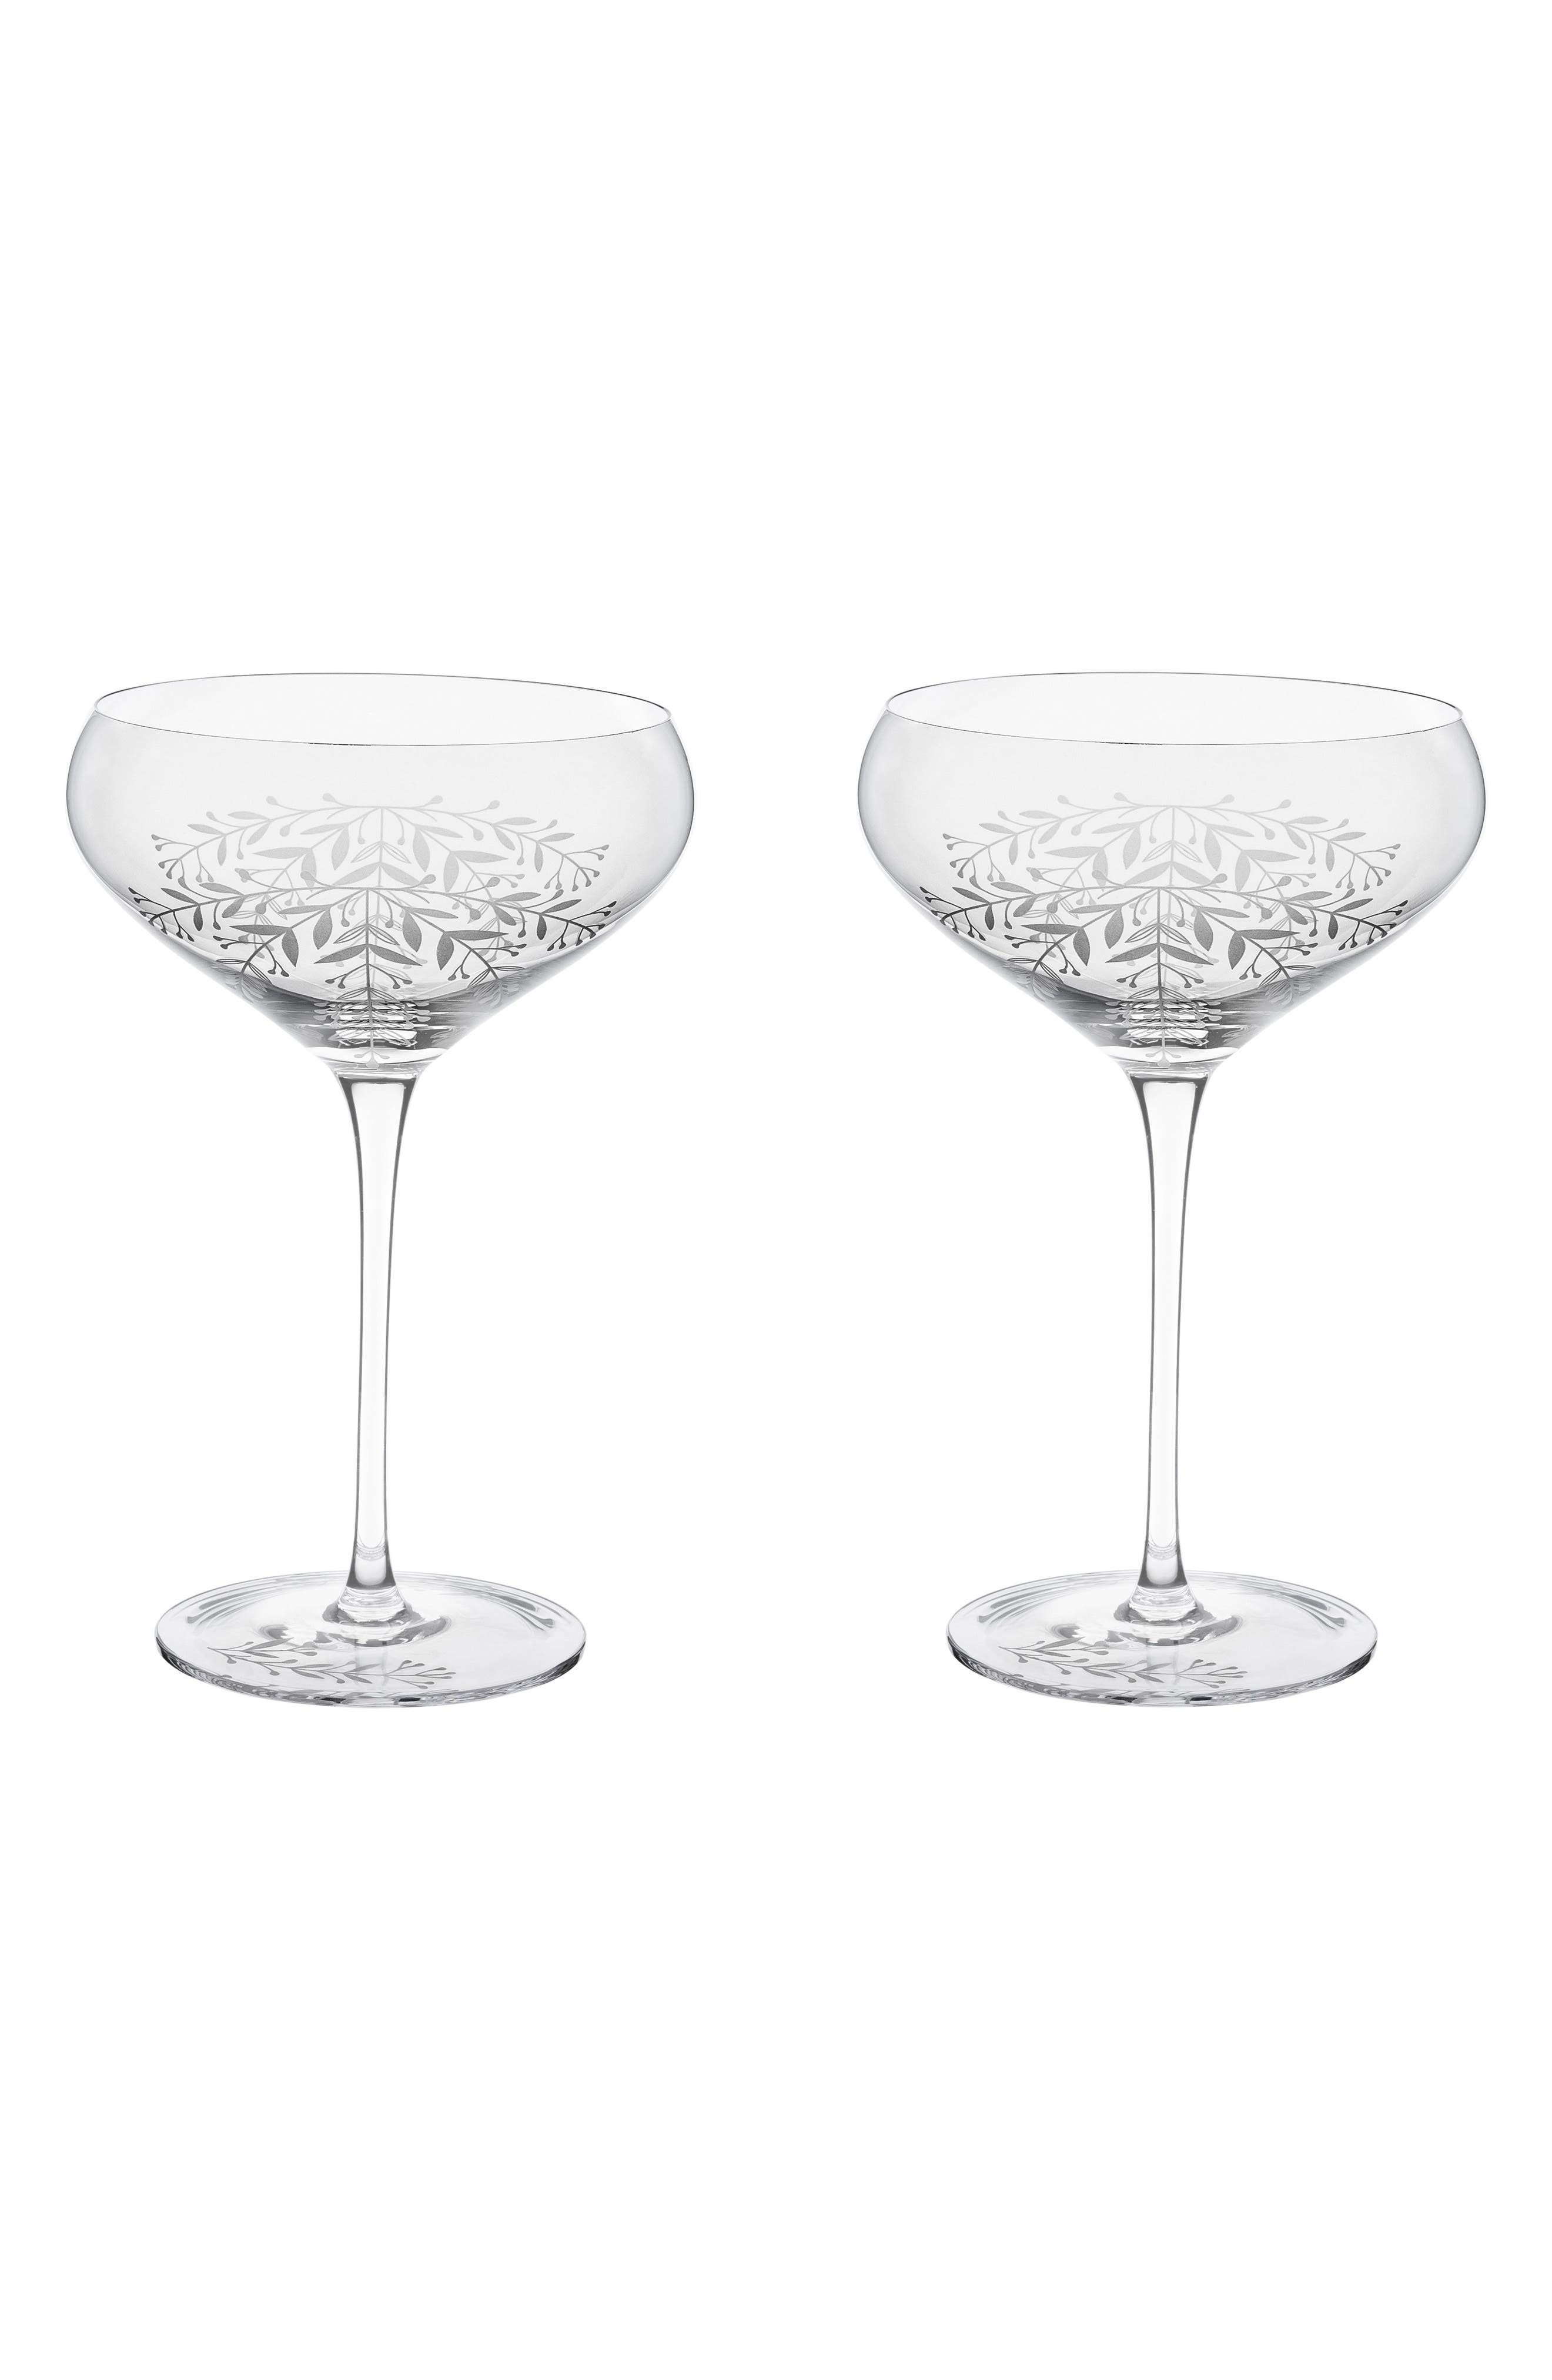 Floral Set of 2 Champagne Coupes,                         Main,                         color, White